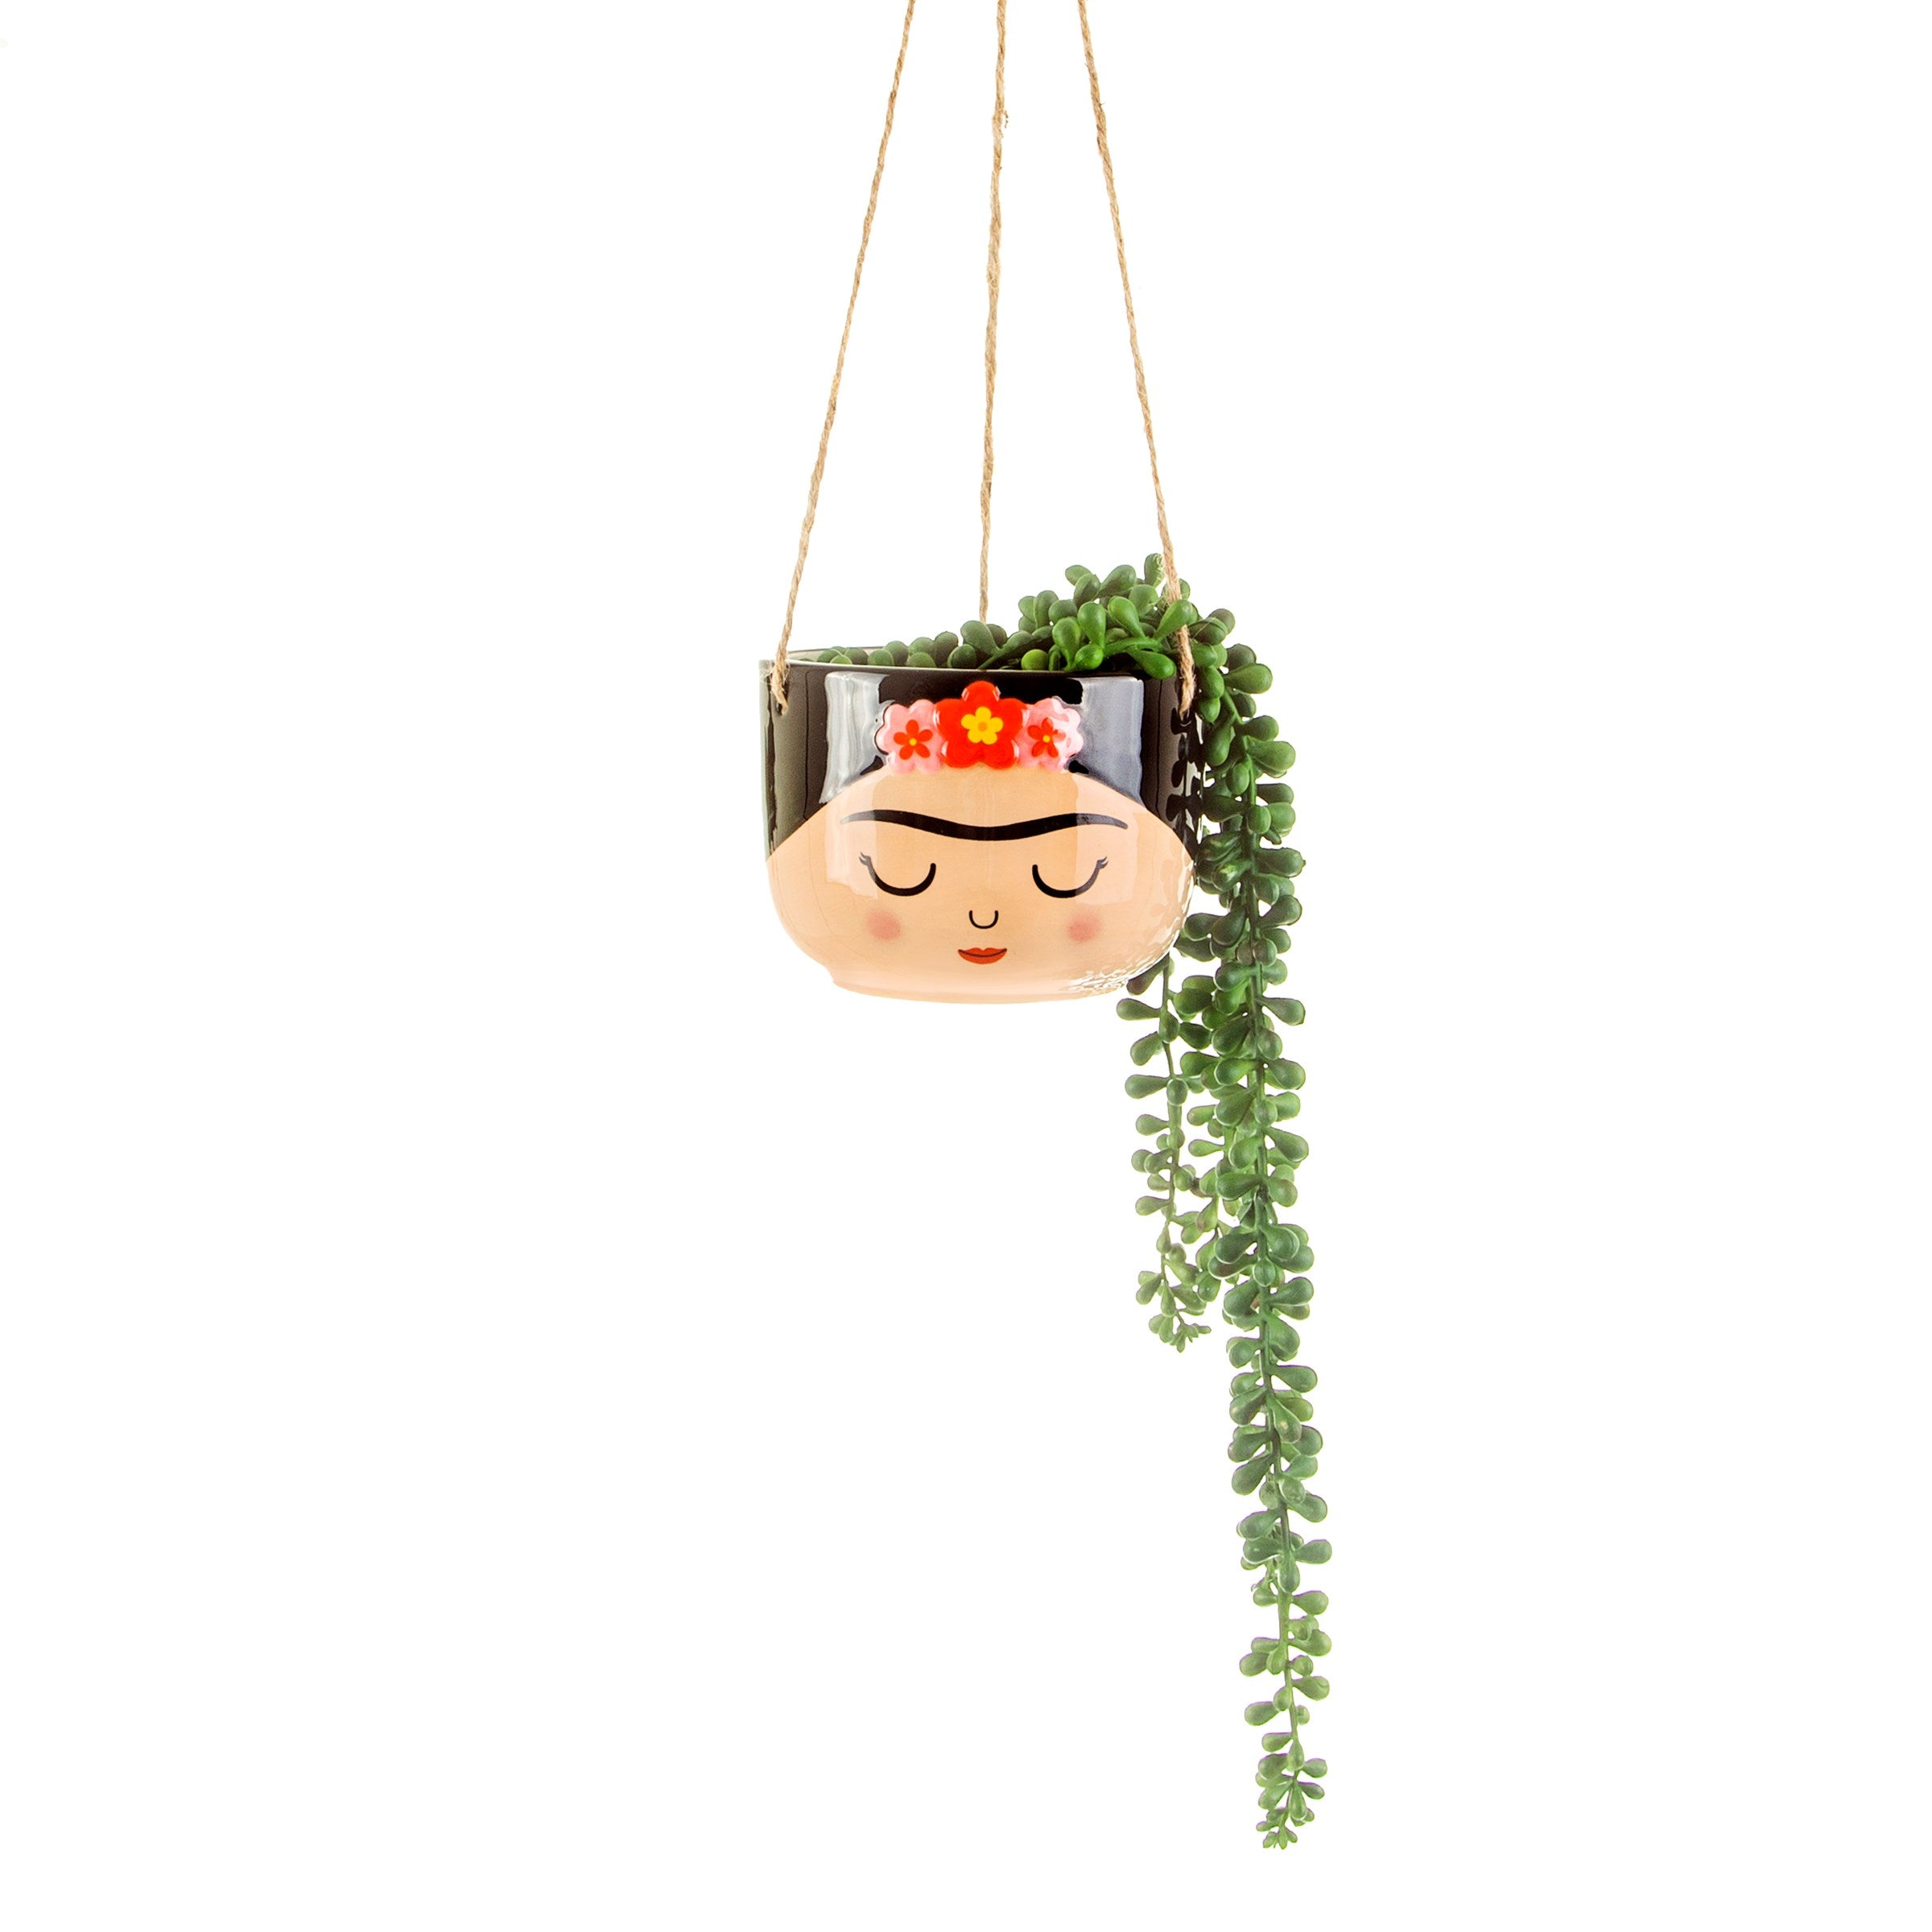 Sass & Belle Planter - Hanging, Frida